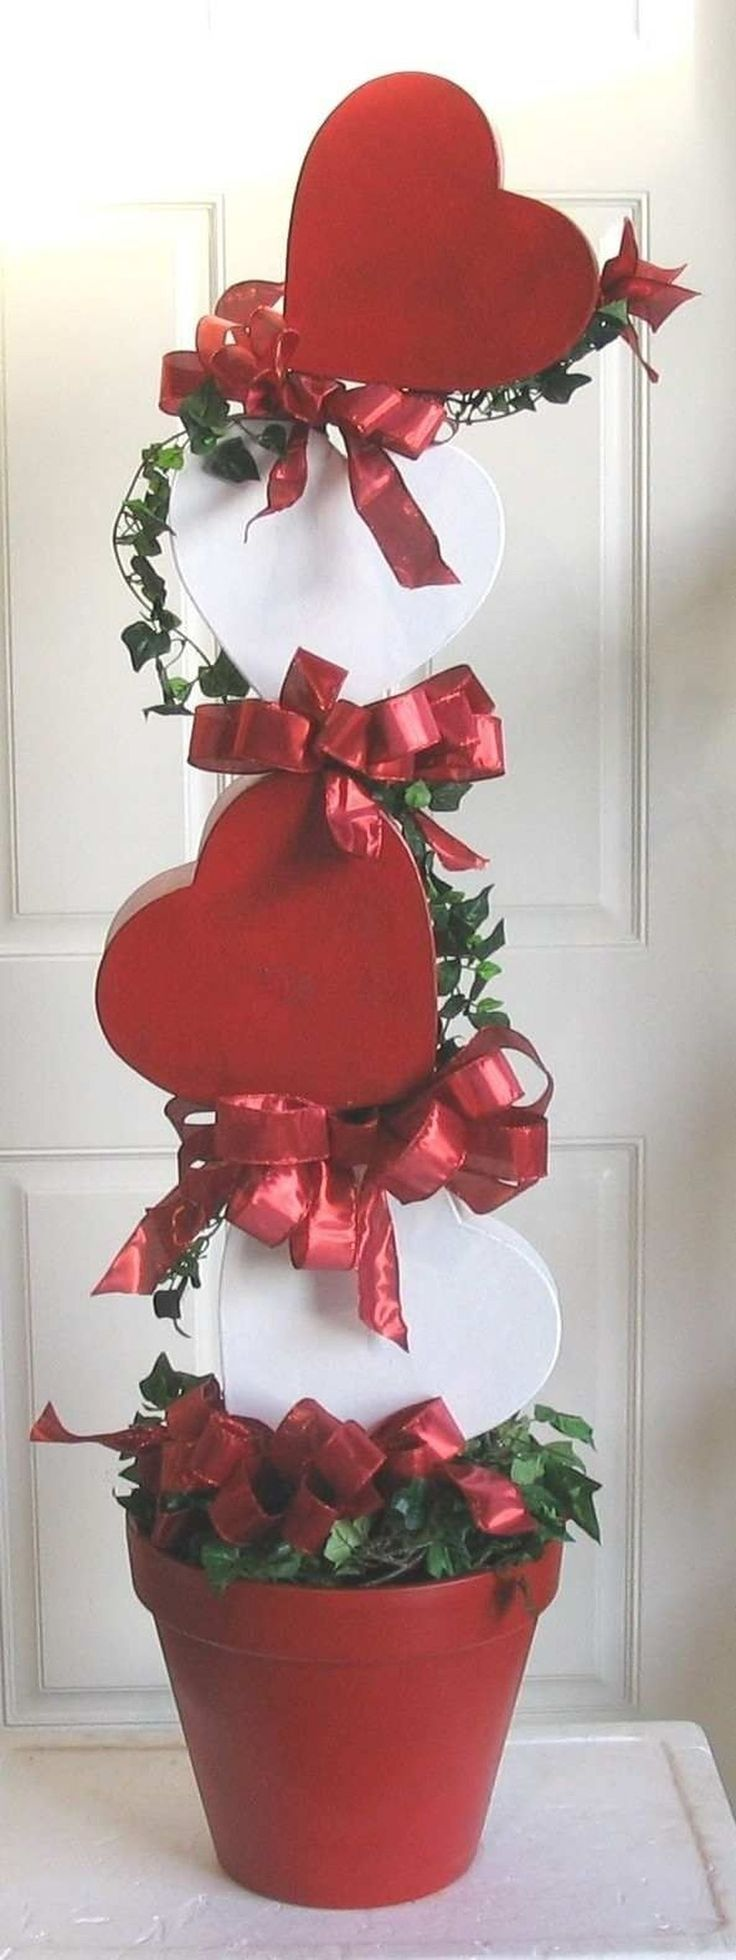 nice 54 Outdoor Valentine Decoration Ideas That Easy To Make  https://decoralink.com/2018/01/15/54-outdoor-valentine-decoration-ideas-easy-make/